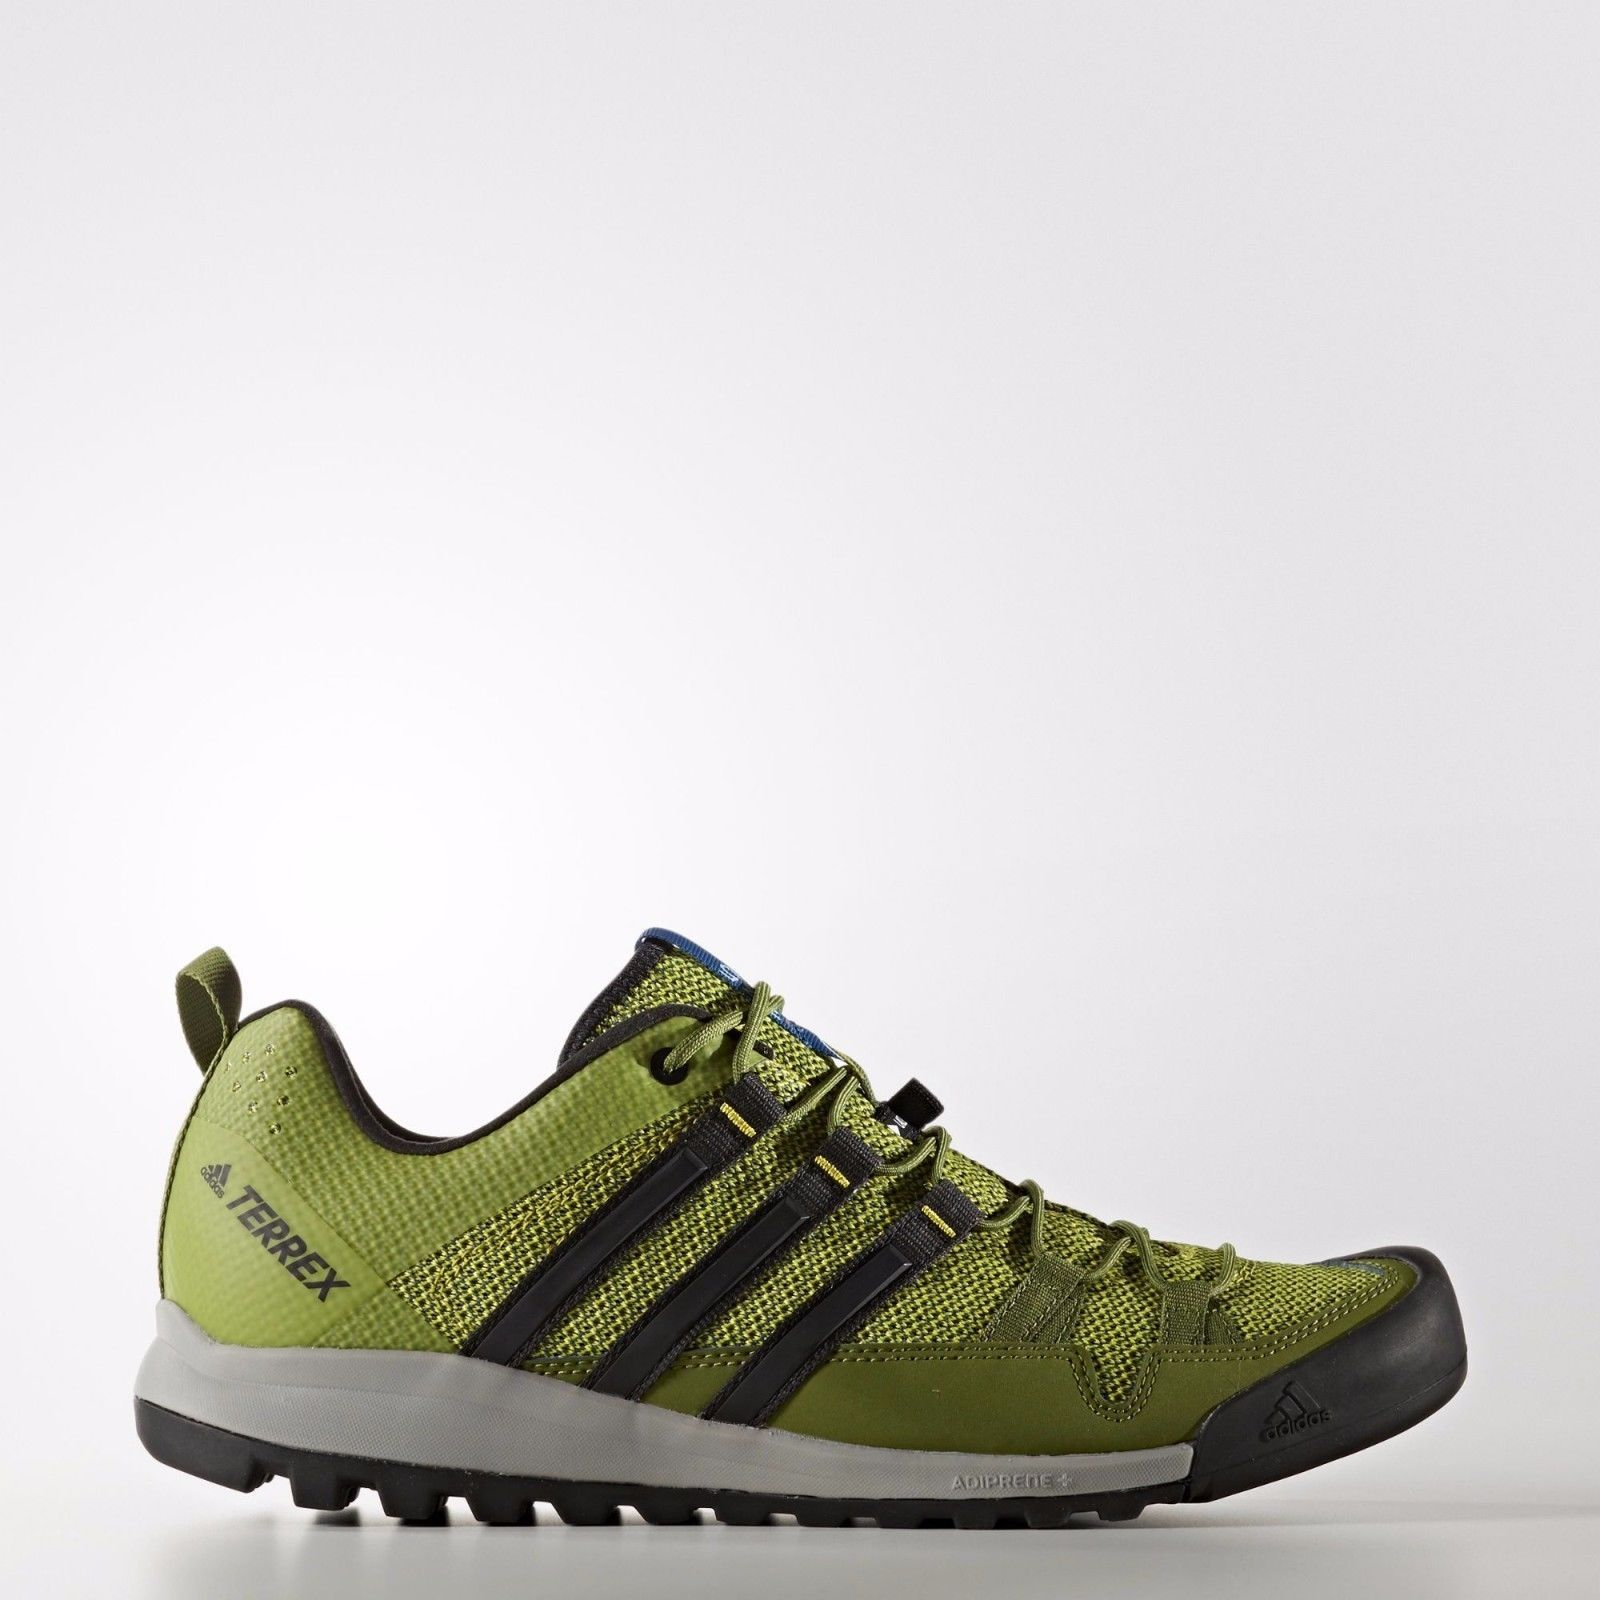 Adidas BB5563 Men's Outdoor Terrex Solo Shoes, Unity Lime